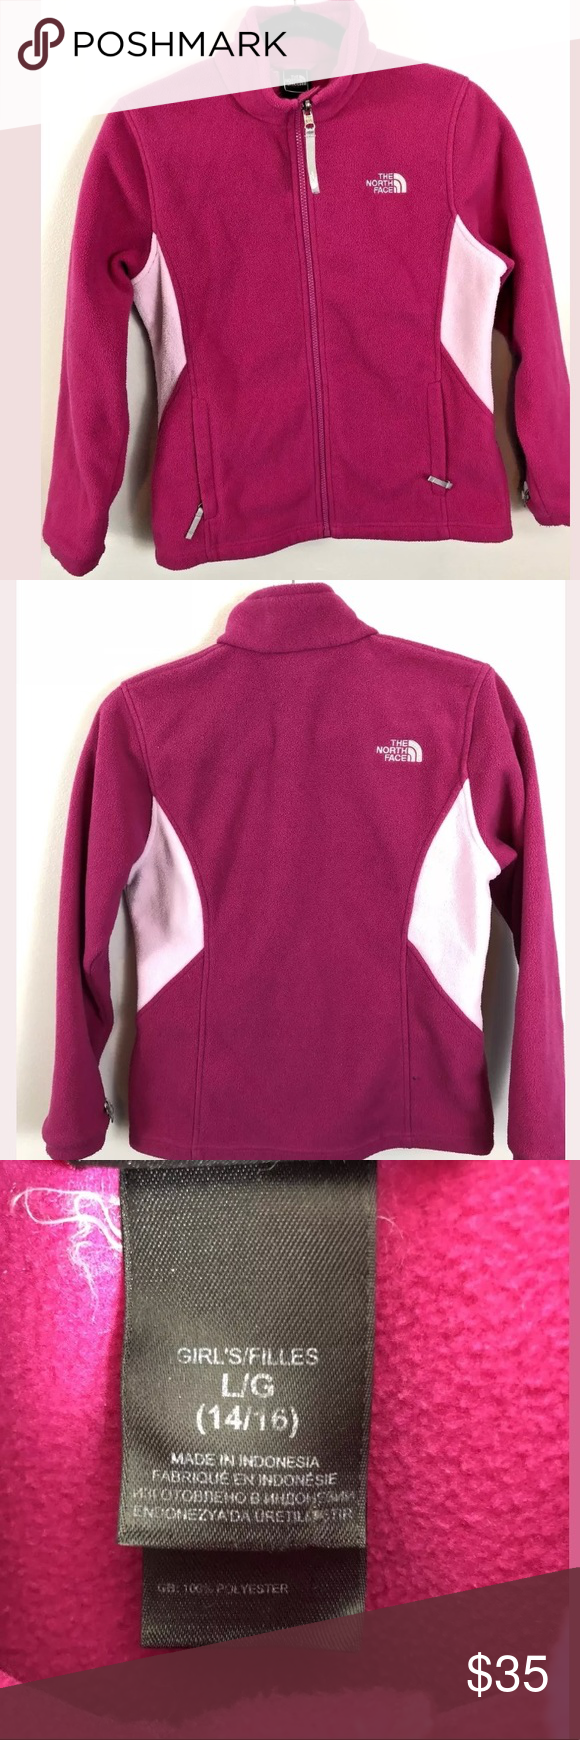 The north face large pink zip up fleece jacket my posh closet